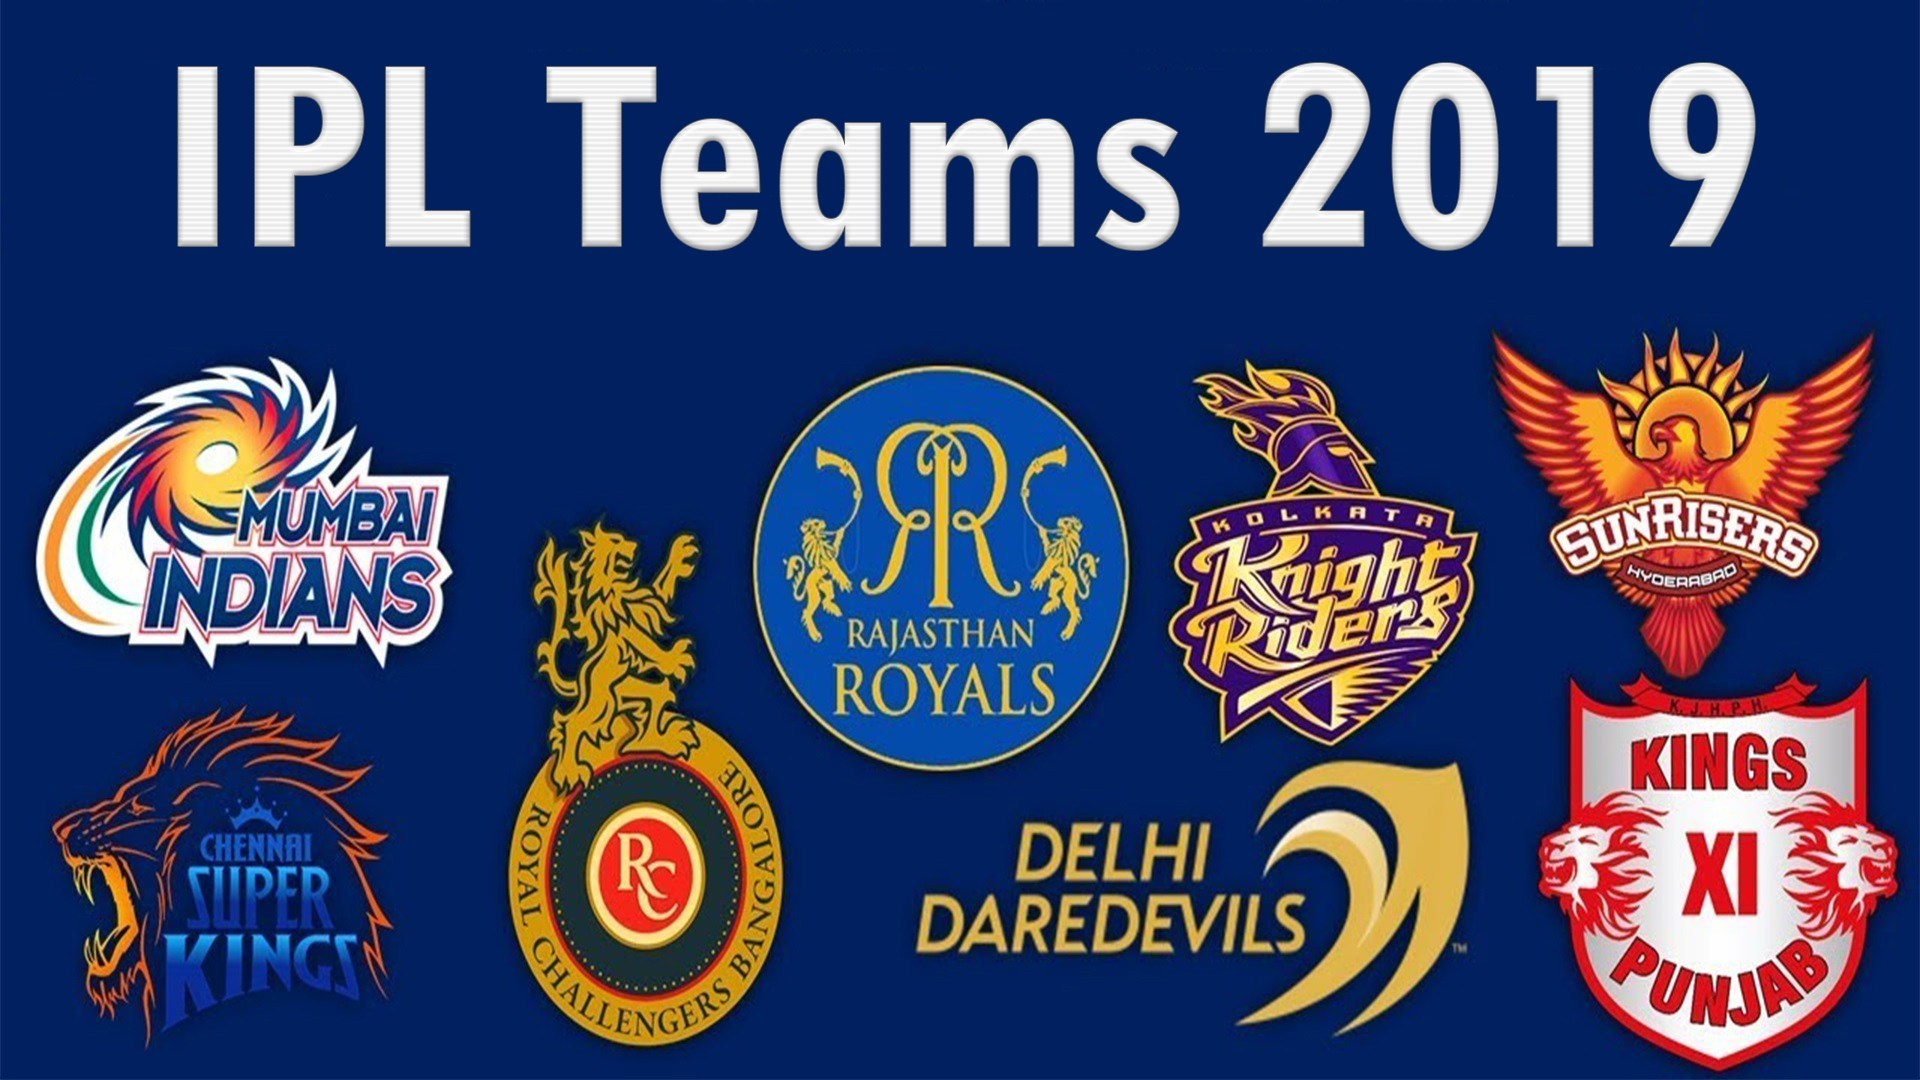 IPL Teams Logo Images HD Wallpapers 2019   Events Today 1920x1080